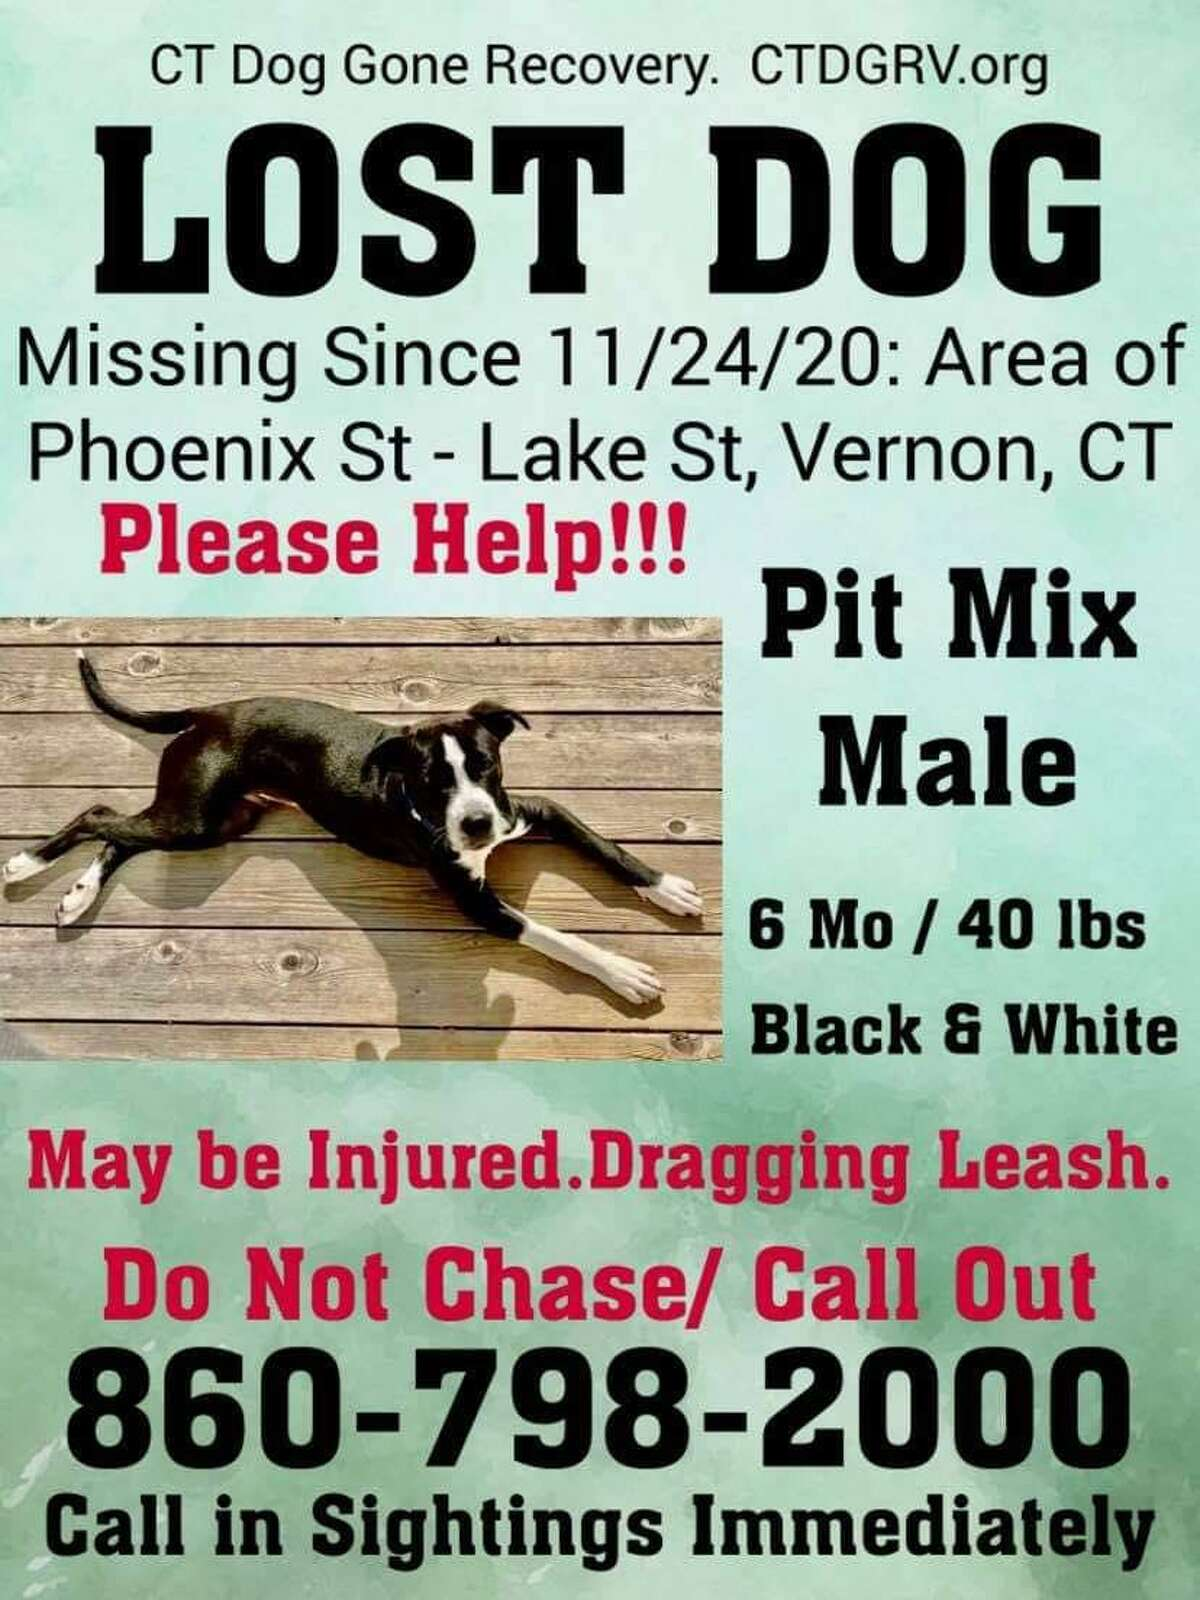 Ollie was last seen on Phoenix Street in Vernon, Conn., on Tuesday, Nov. 24, 2020.